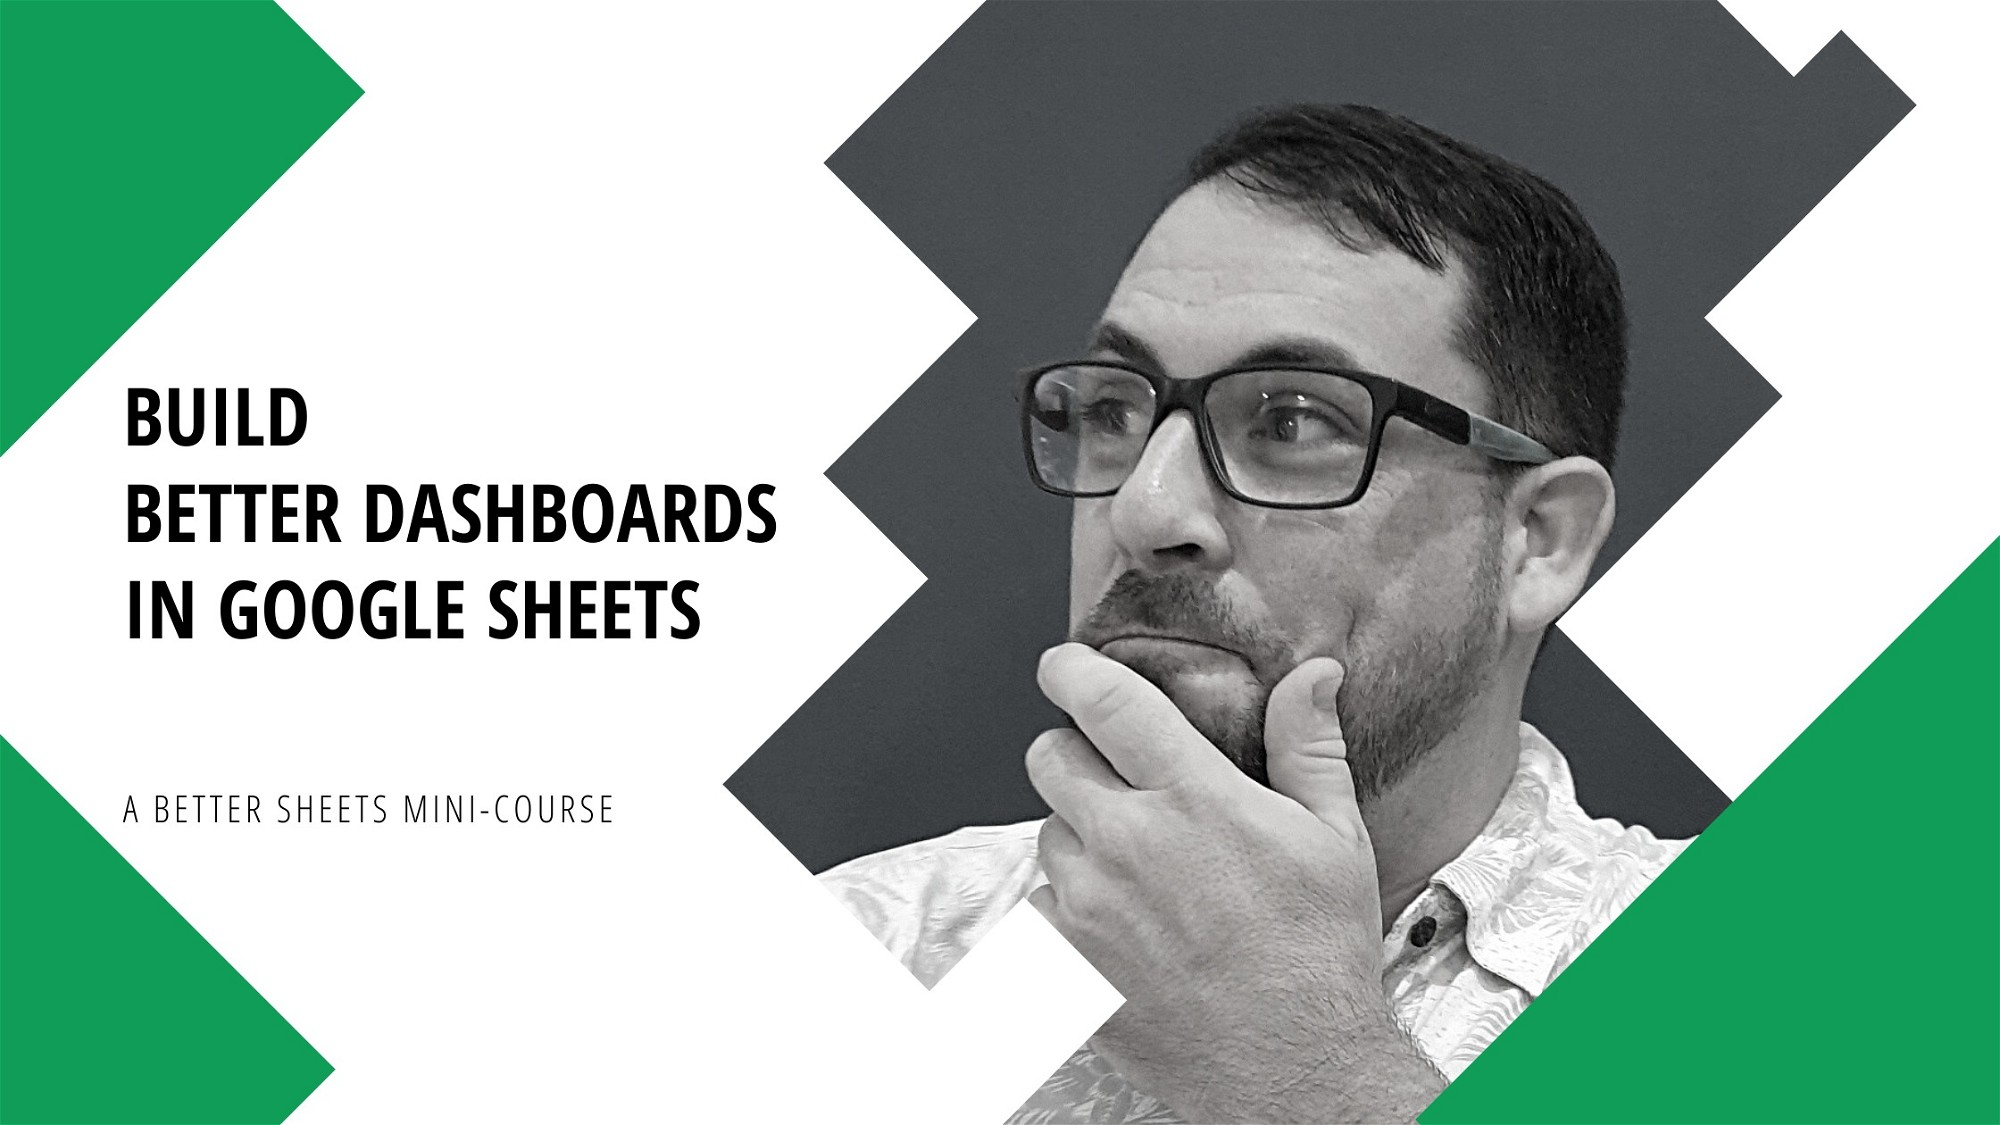 AppSumo Deal for Build Better Dashboards in Google Sheets